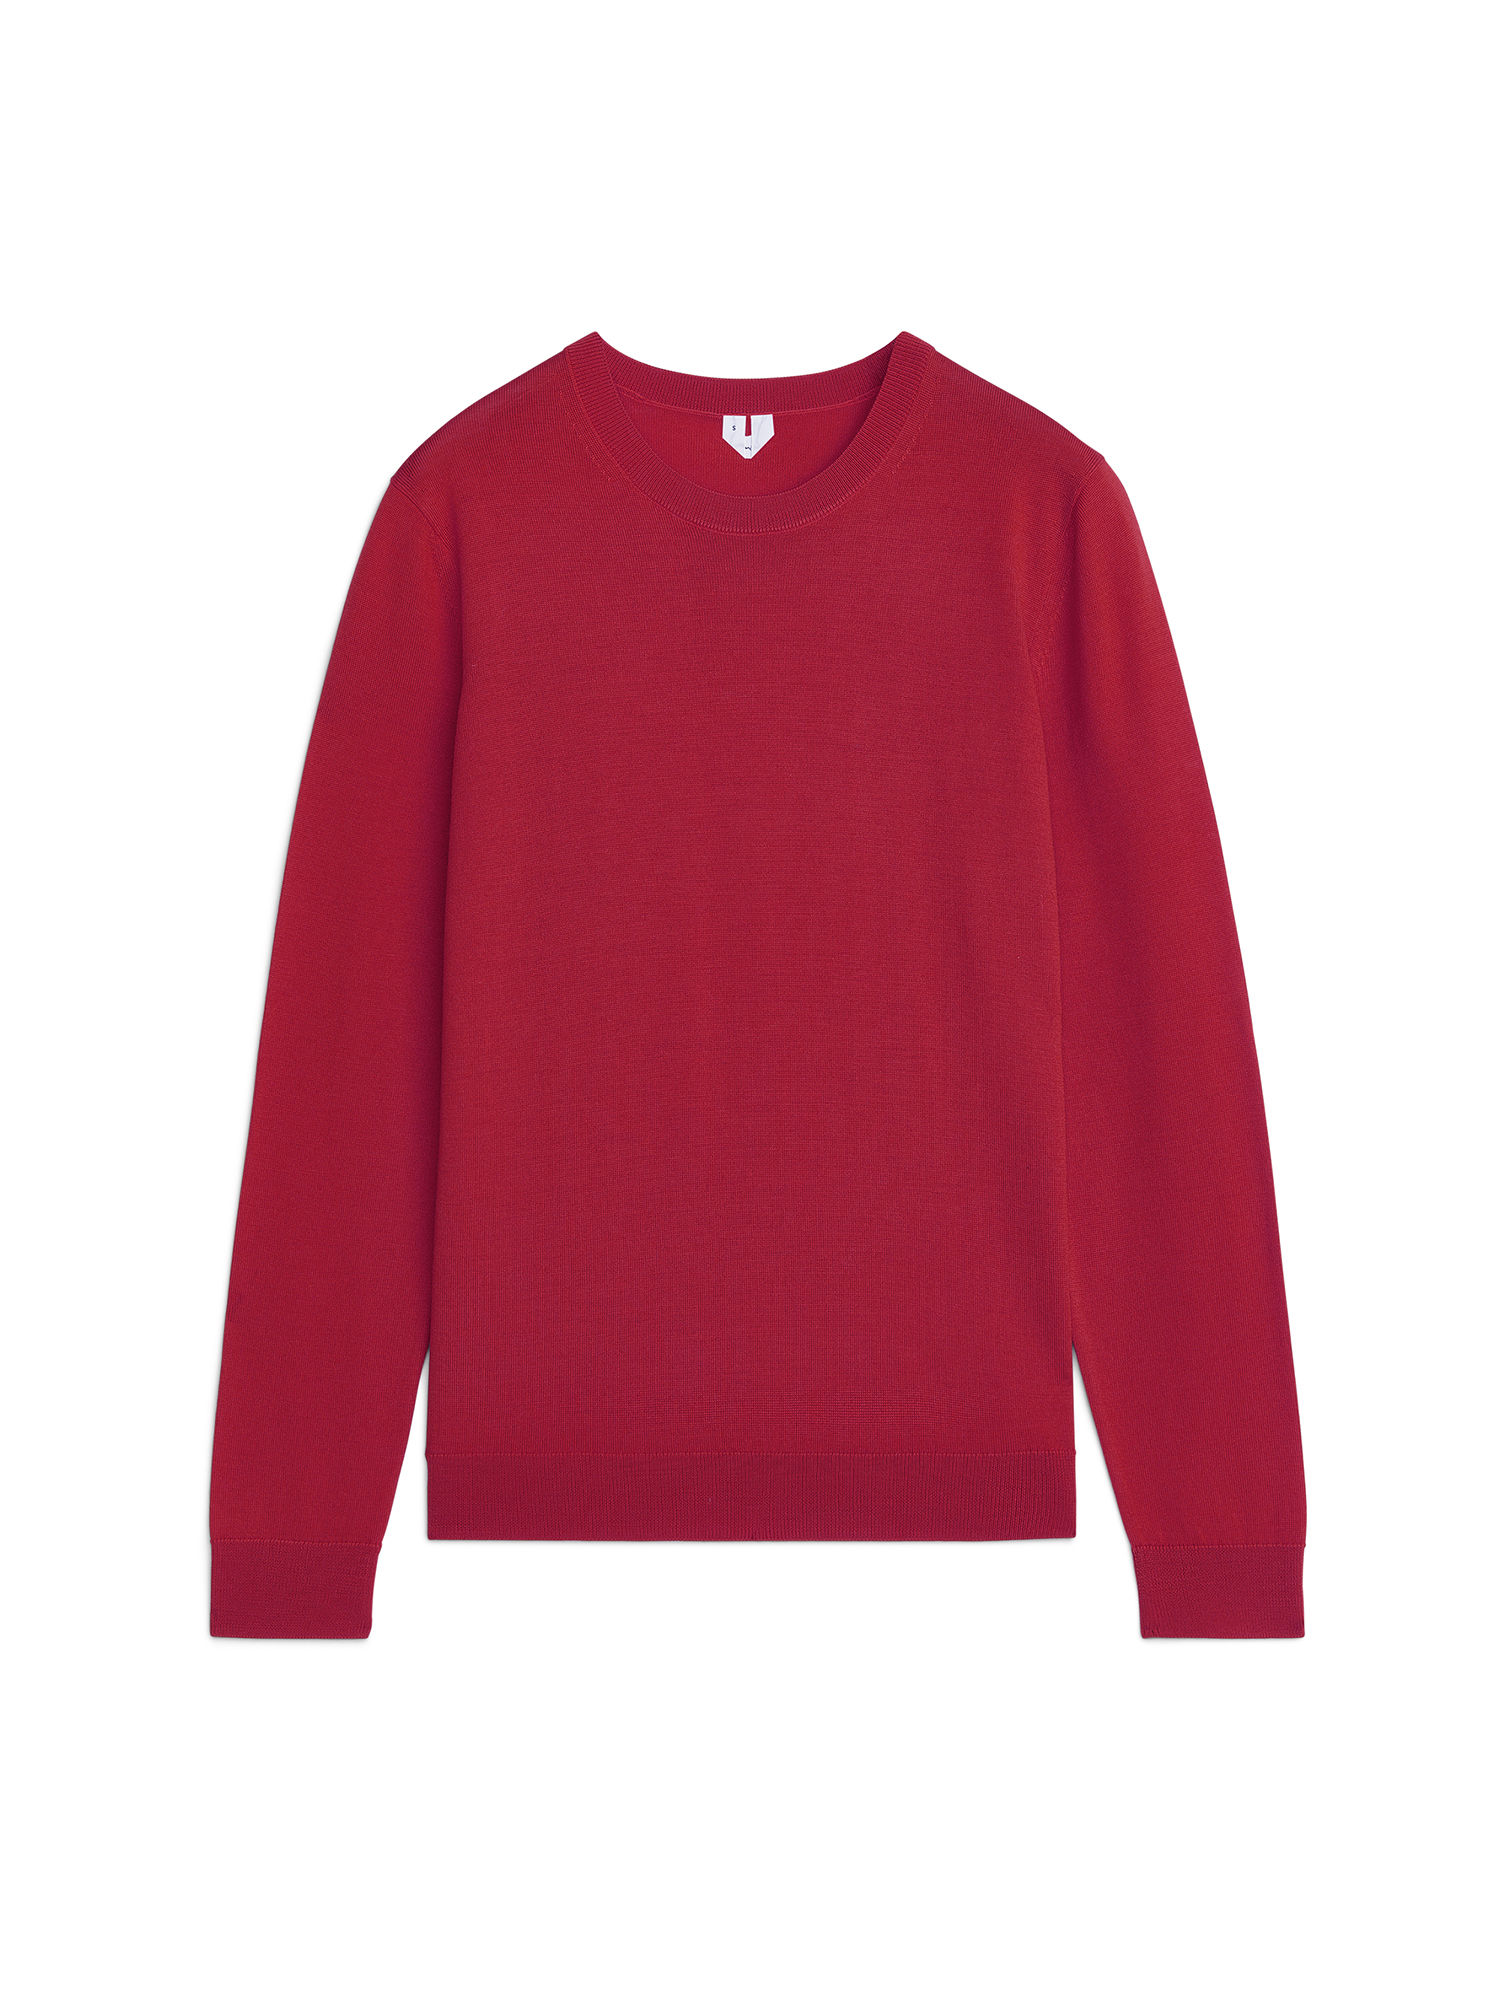 Fabric Swatch image of Arket merino crew-neck jumper in red